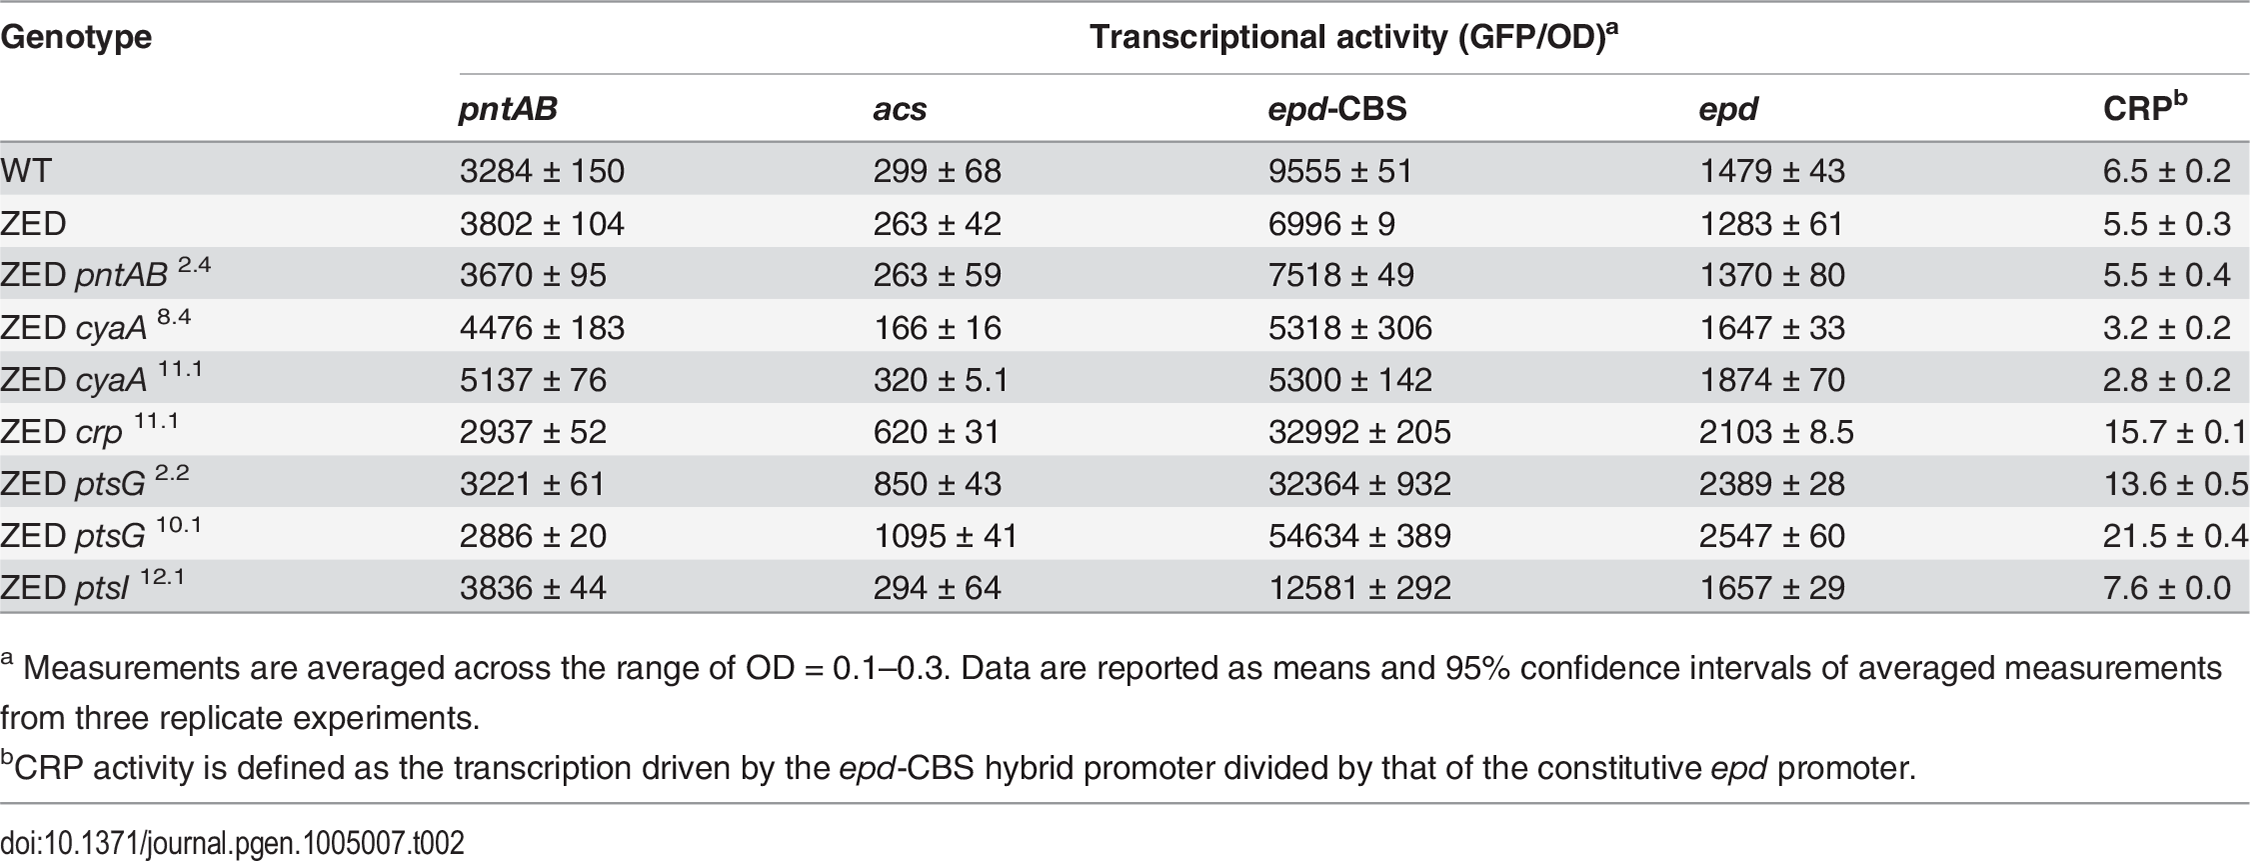 Effects of adaptive mutations on transcriptional activity during the exponential phase.